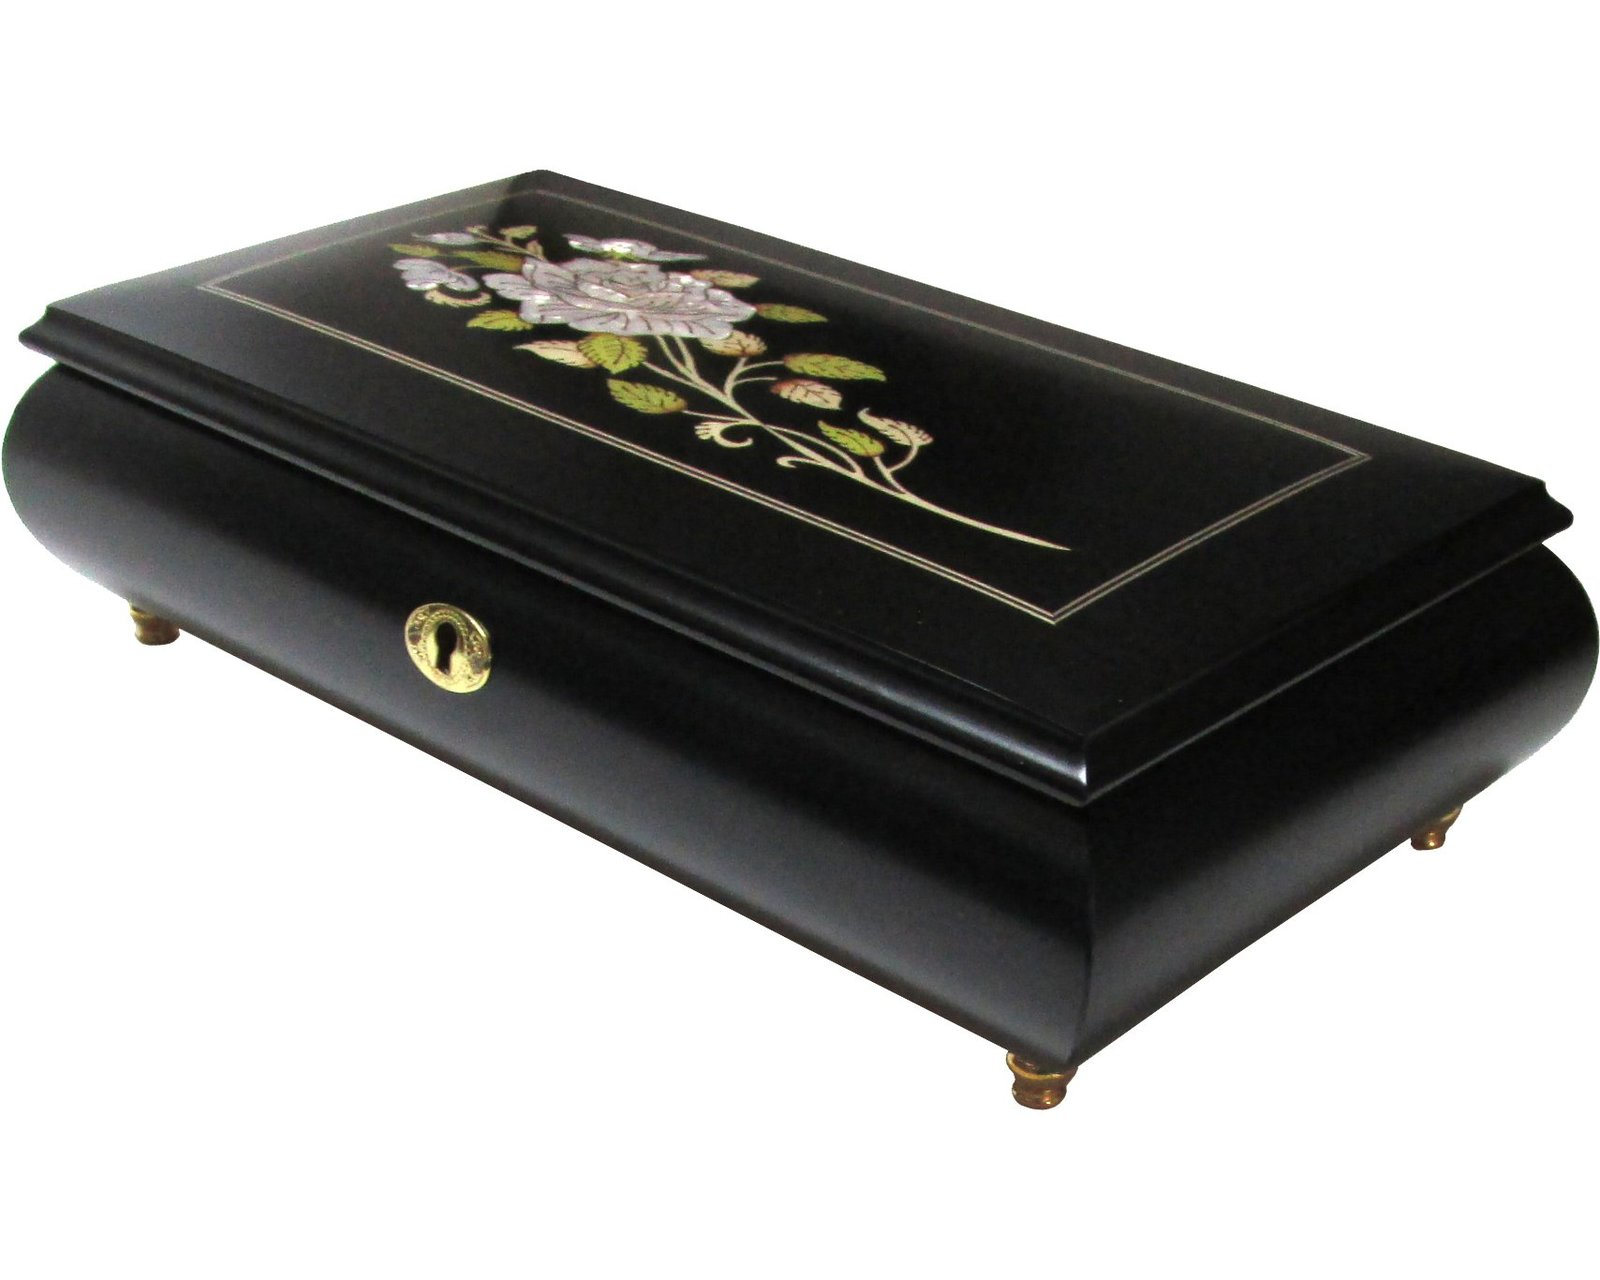 "Primary image for Italian Music Box XL 11"", MOP Floral Inlay, Matte Black"